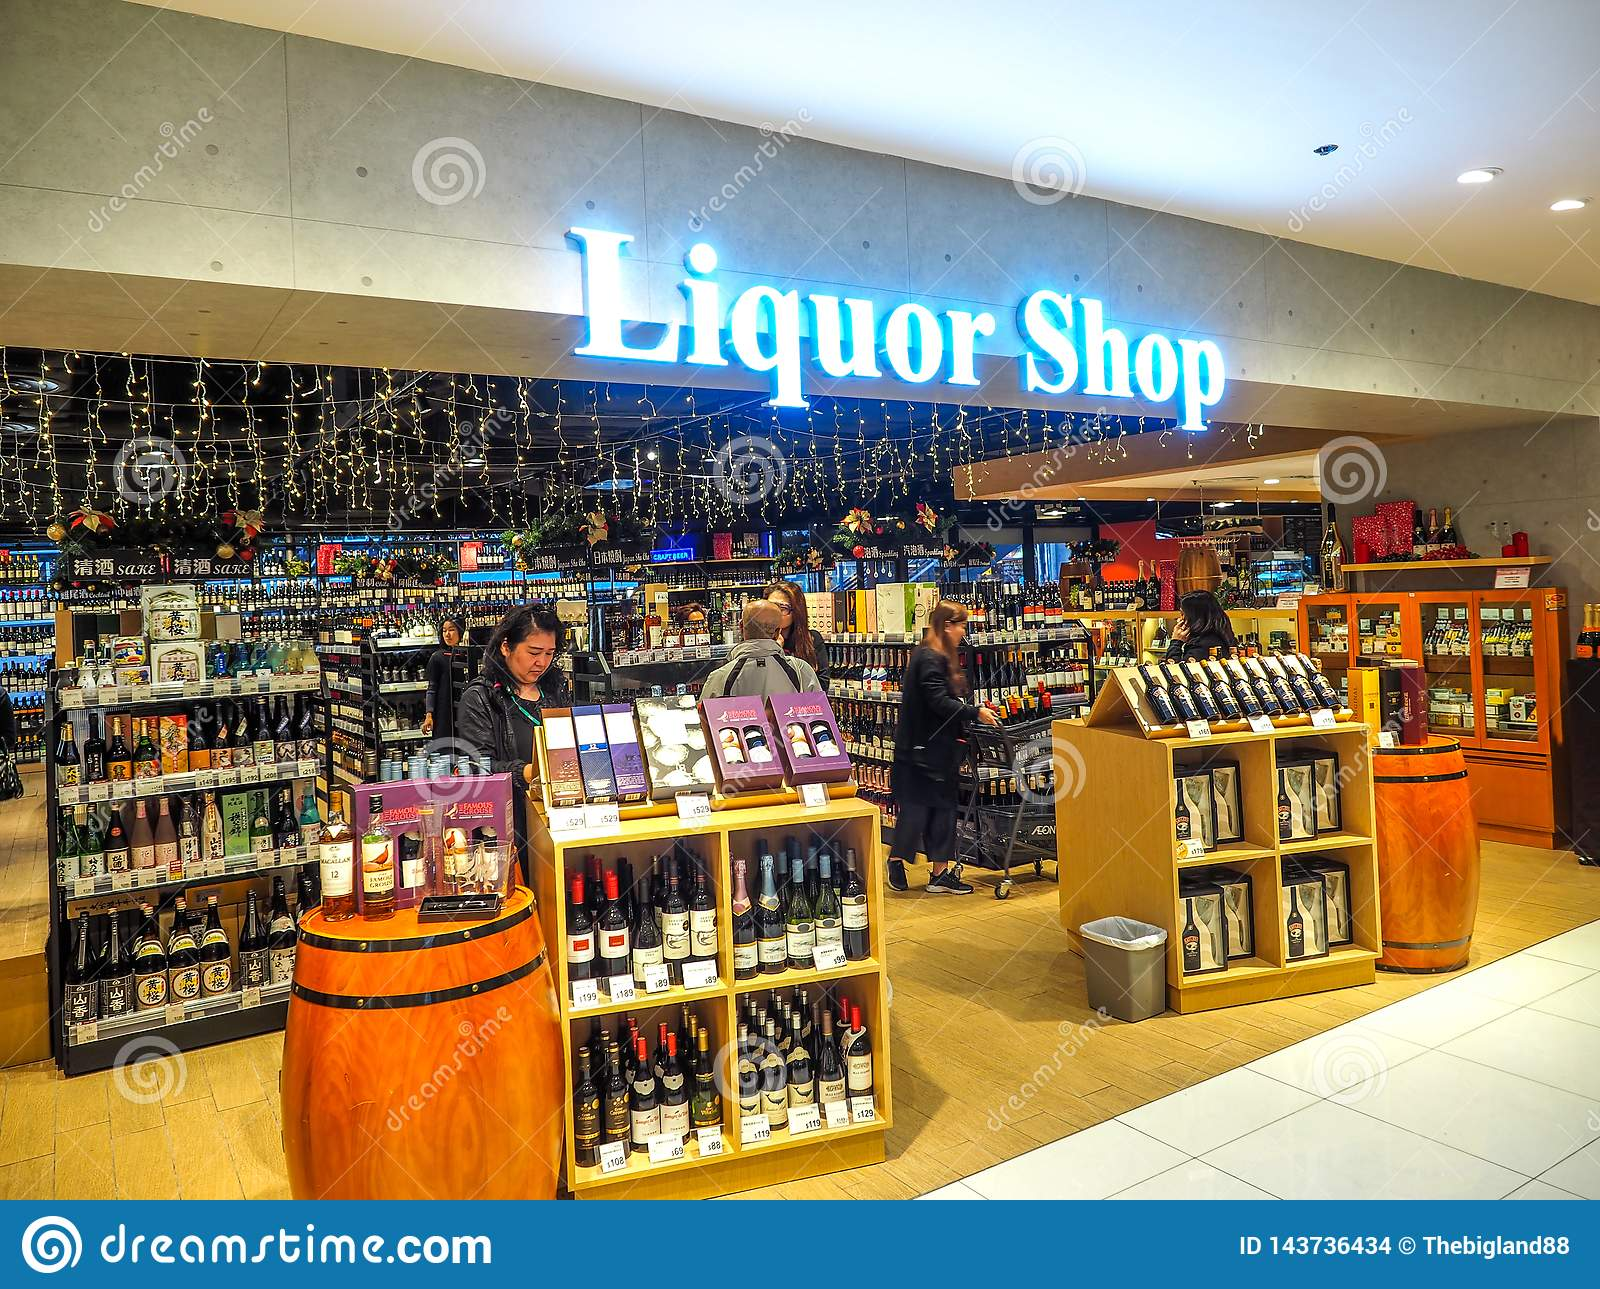 Hong Kong - DEC 9,2016: Wine Shelves With Price Tags On